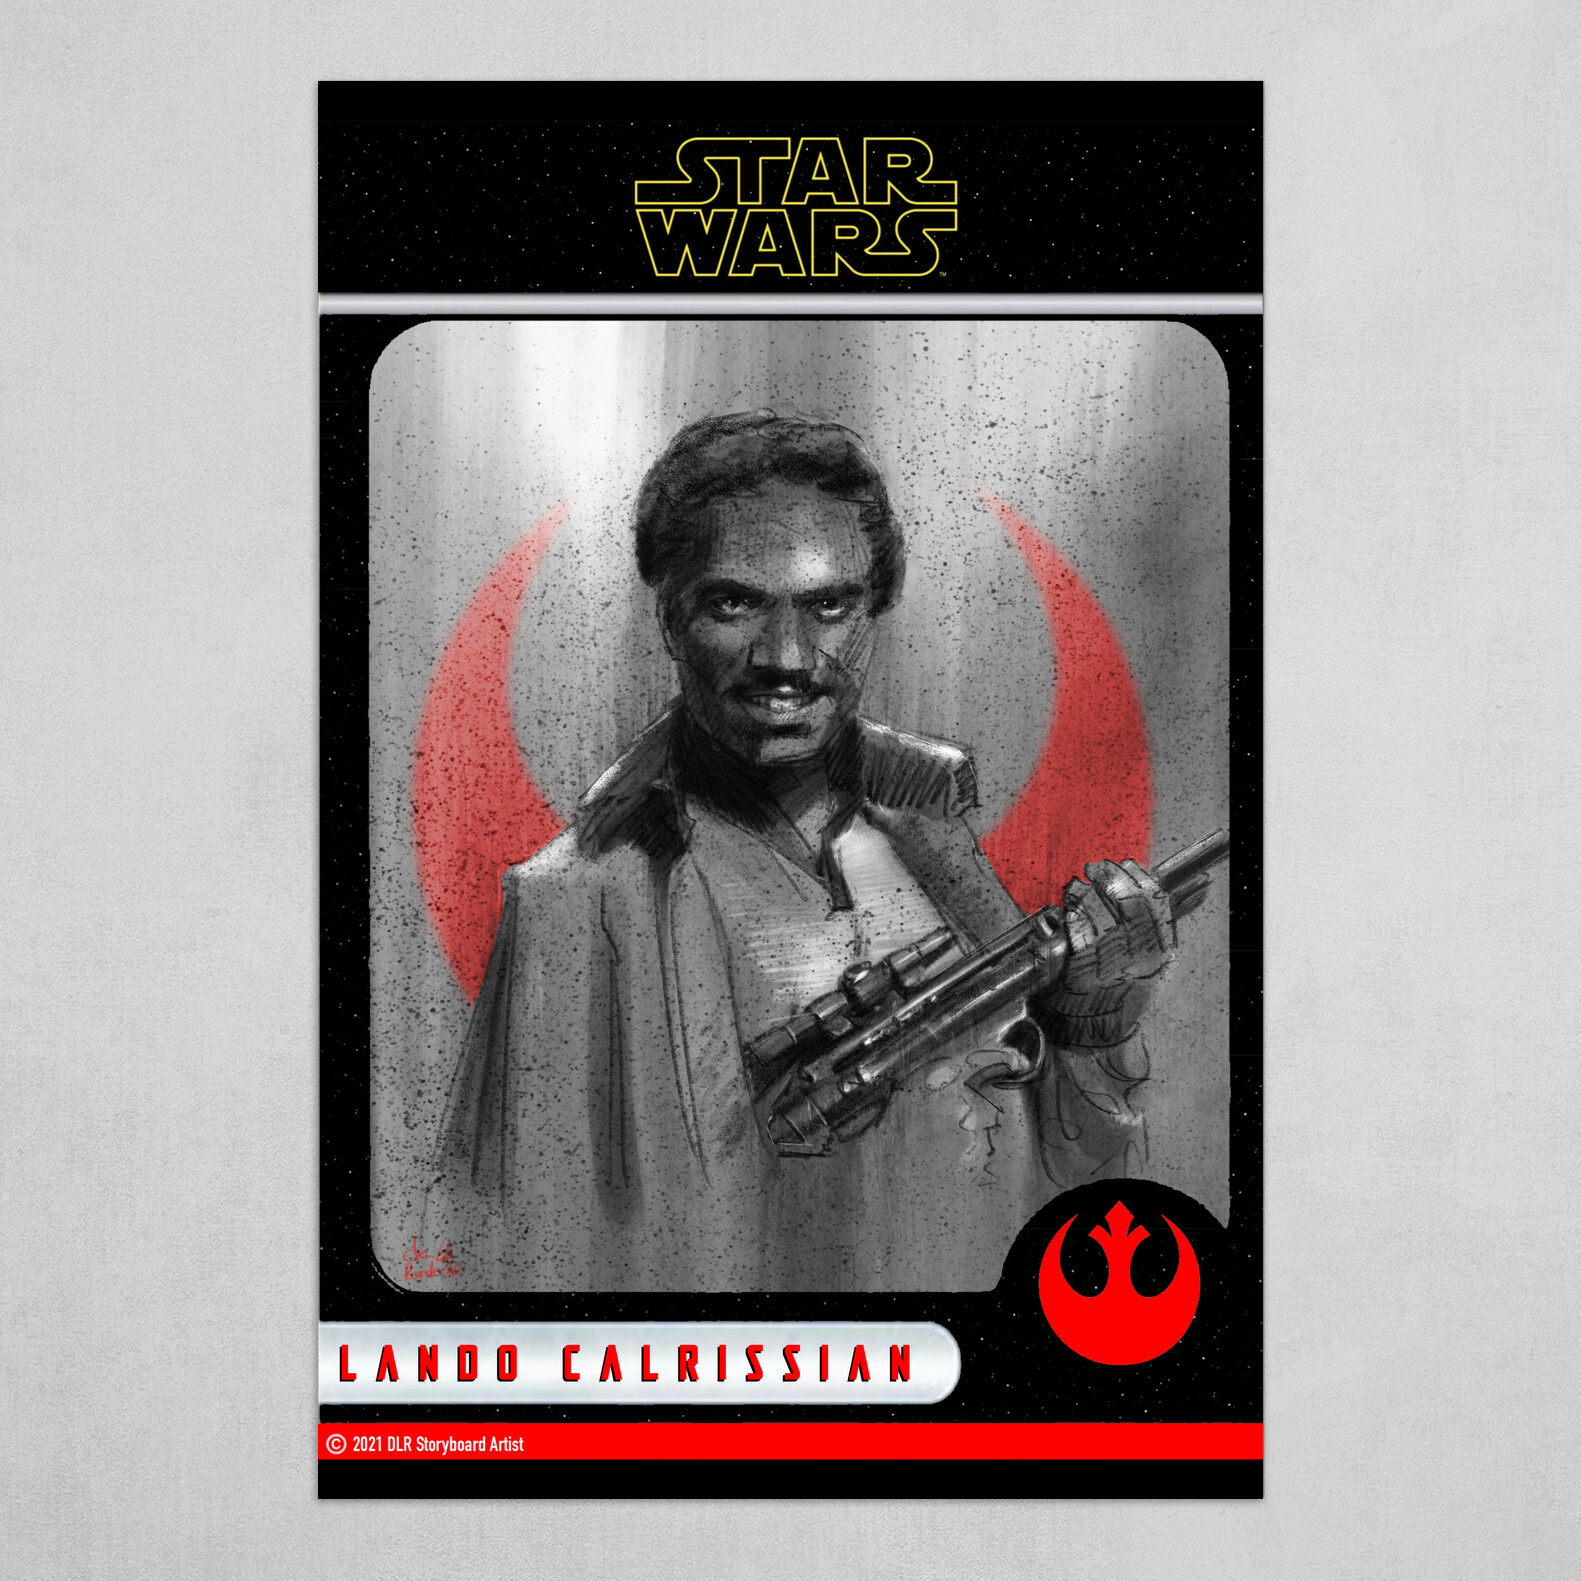 Lando Calrissian Poster (Trading Card Style) in B&W with Red and Yellow